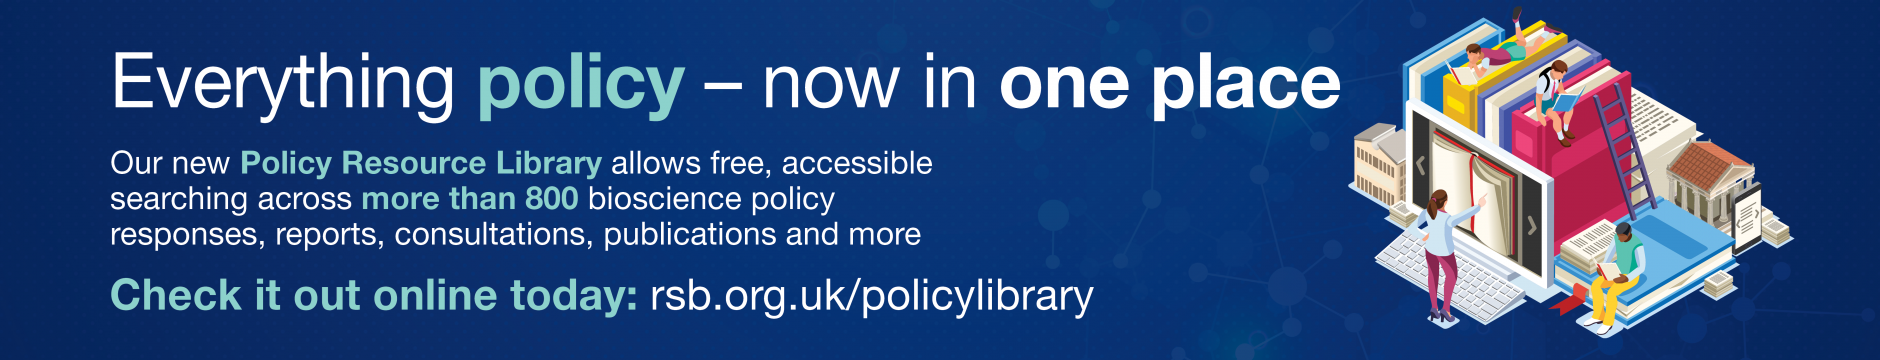 Policy Resource Library